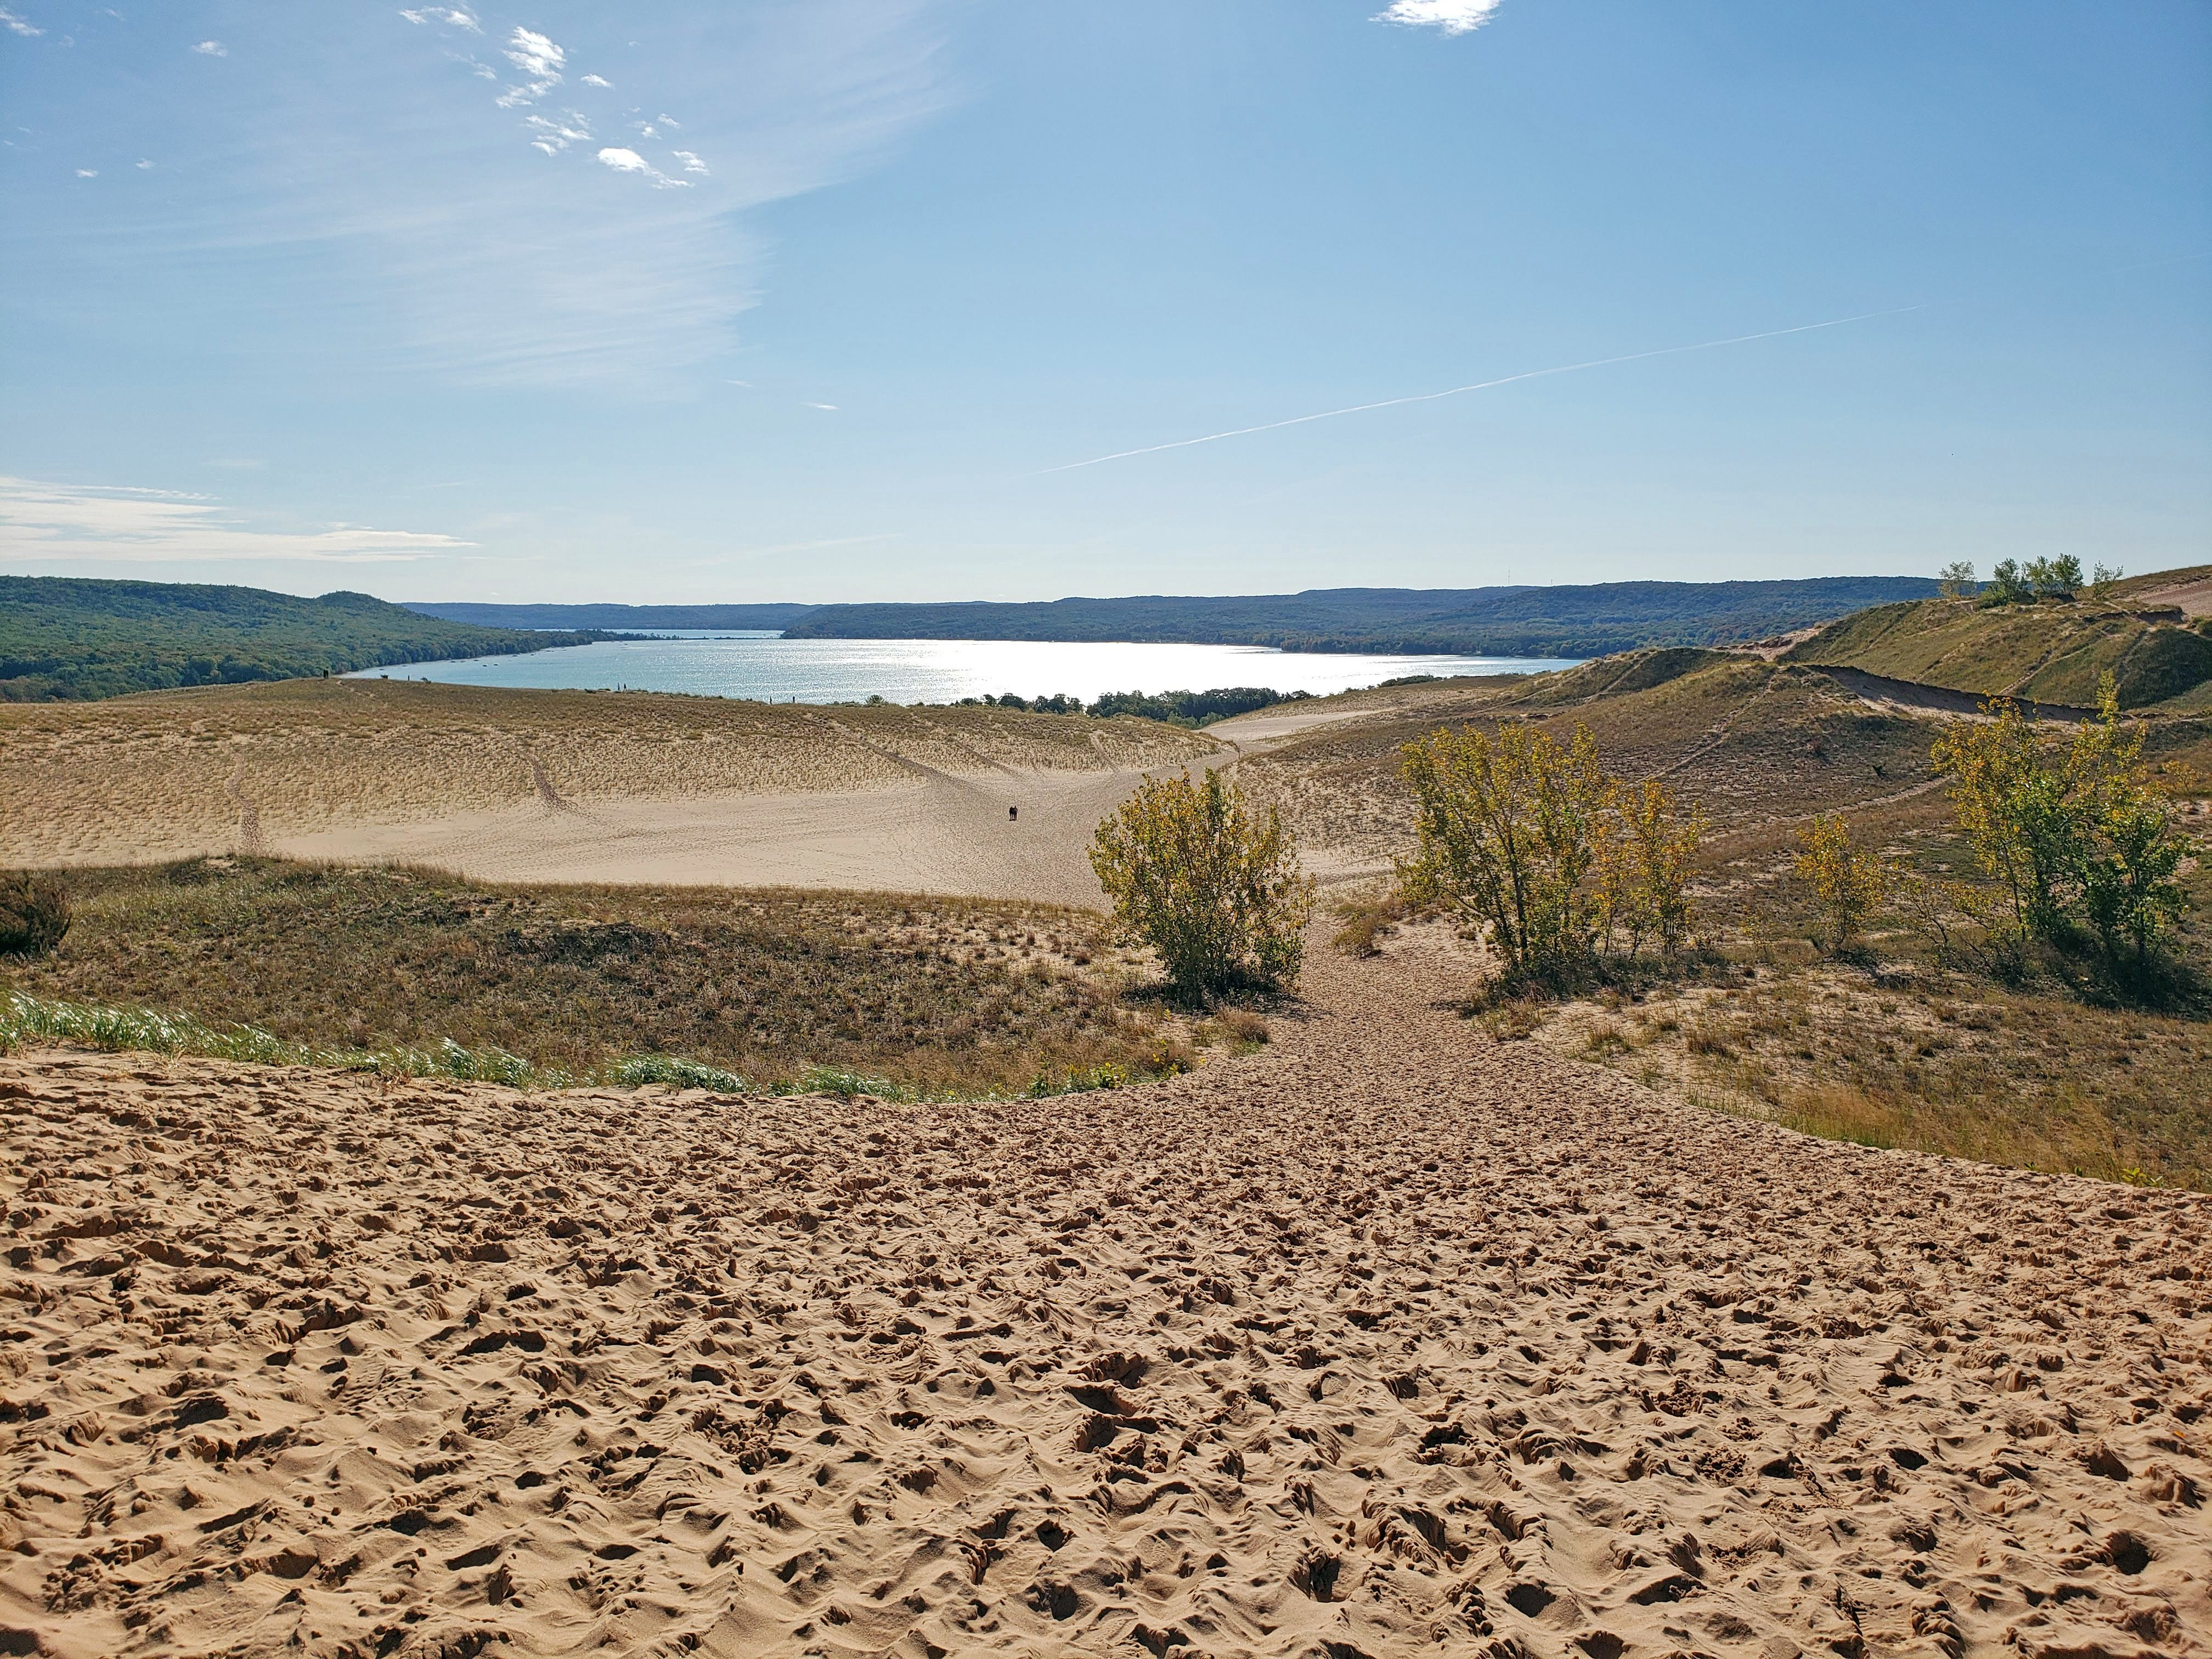 The Dune Climb Trail at Sleeping Bear Dunes National Lakeshore provides a view of Glen Lake to the east.